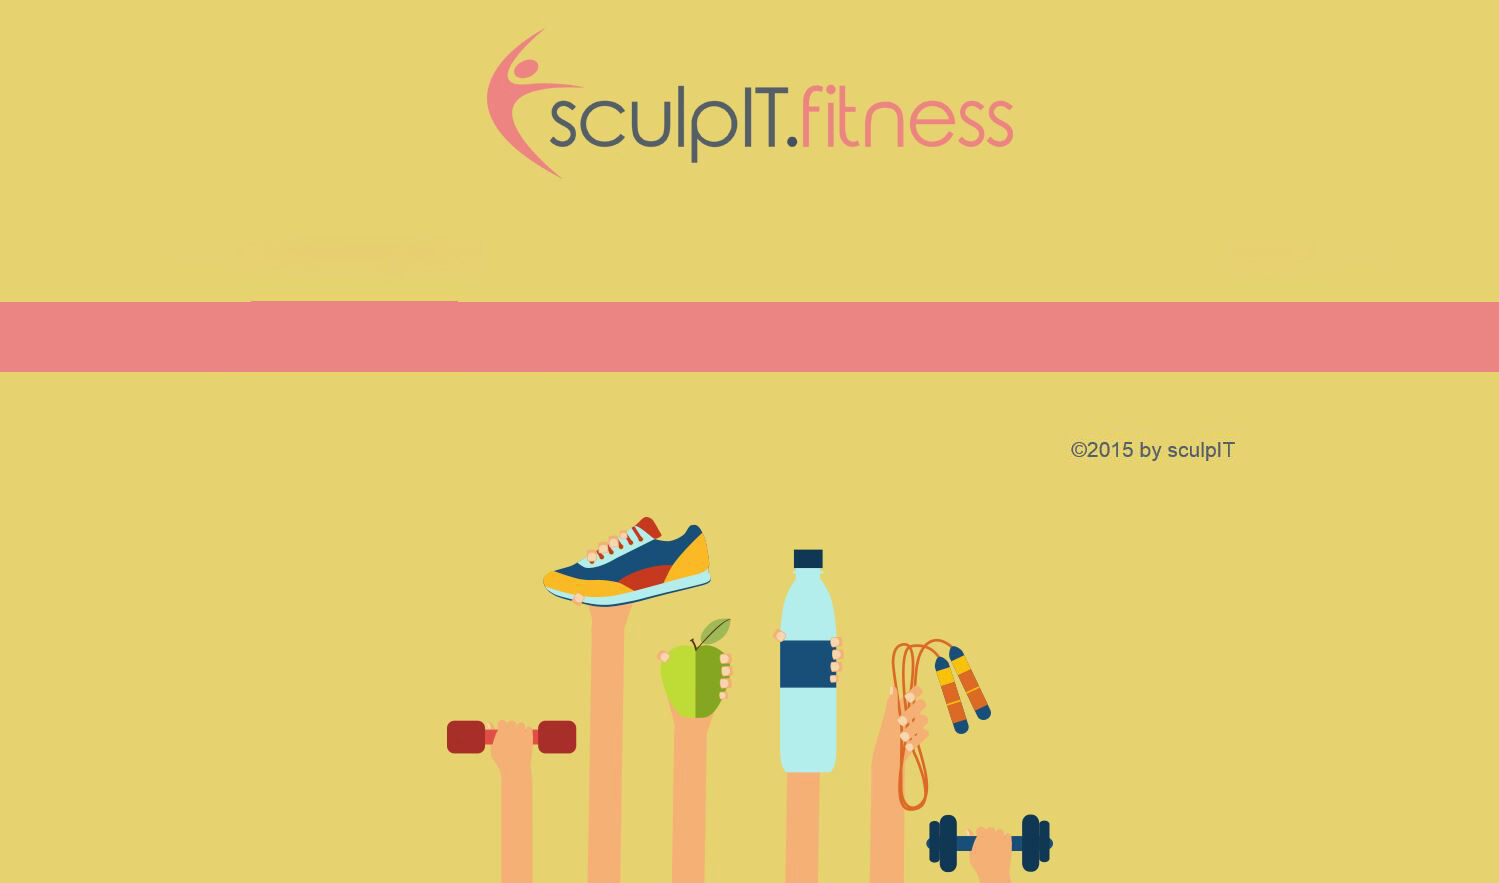 sculpIT.fitness